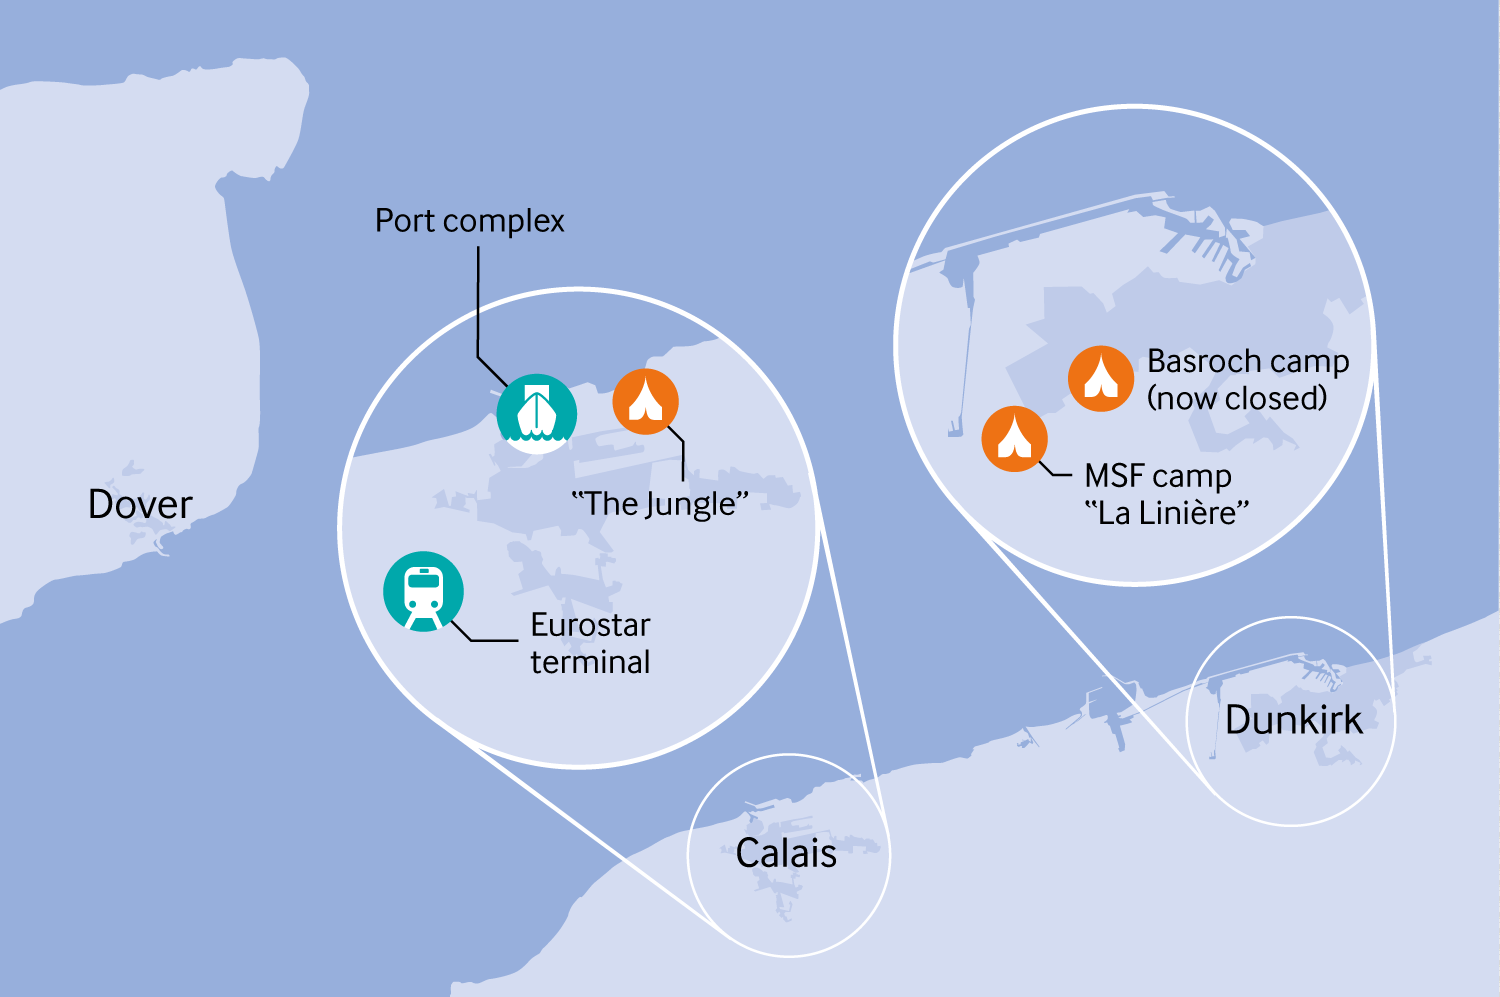 map of migrant camps in Calais and Dunkirk